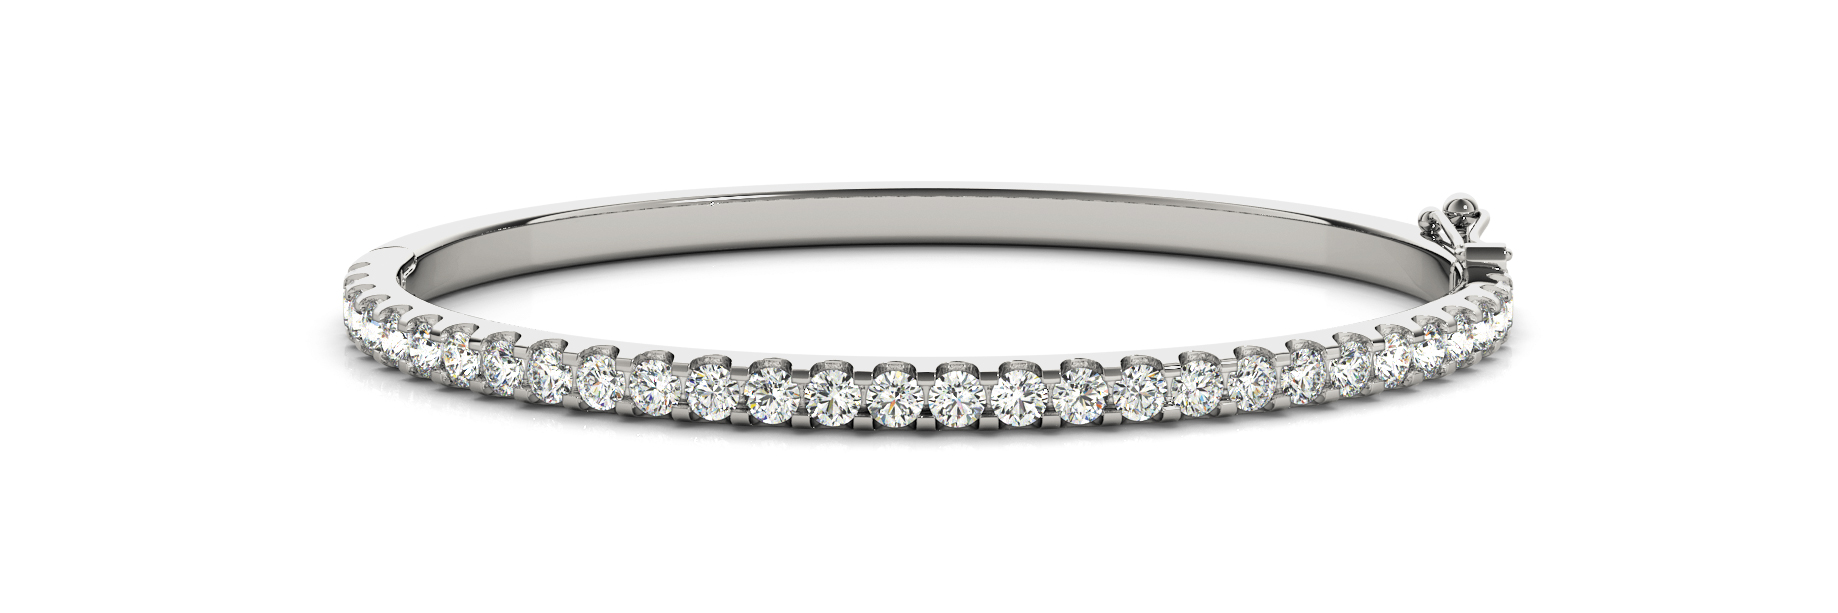 4.2 Carat Round Diamond Bangle in White Gold